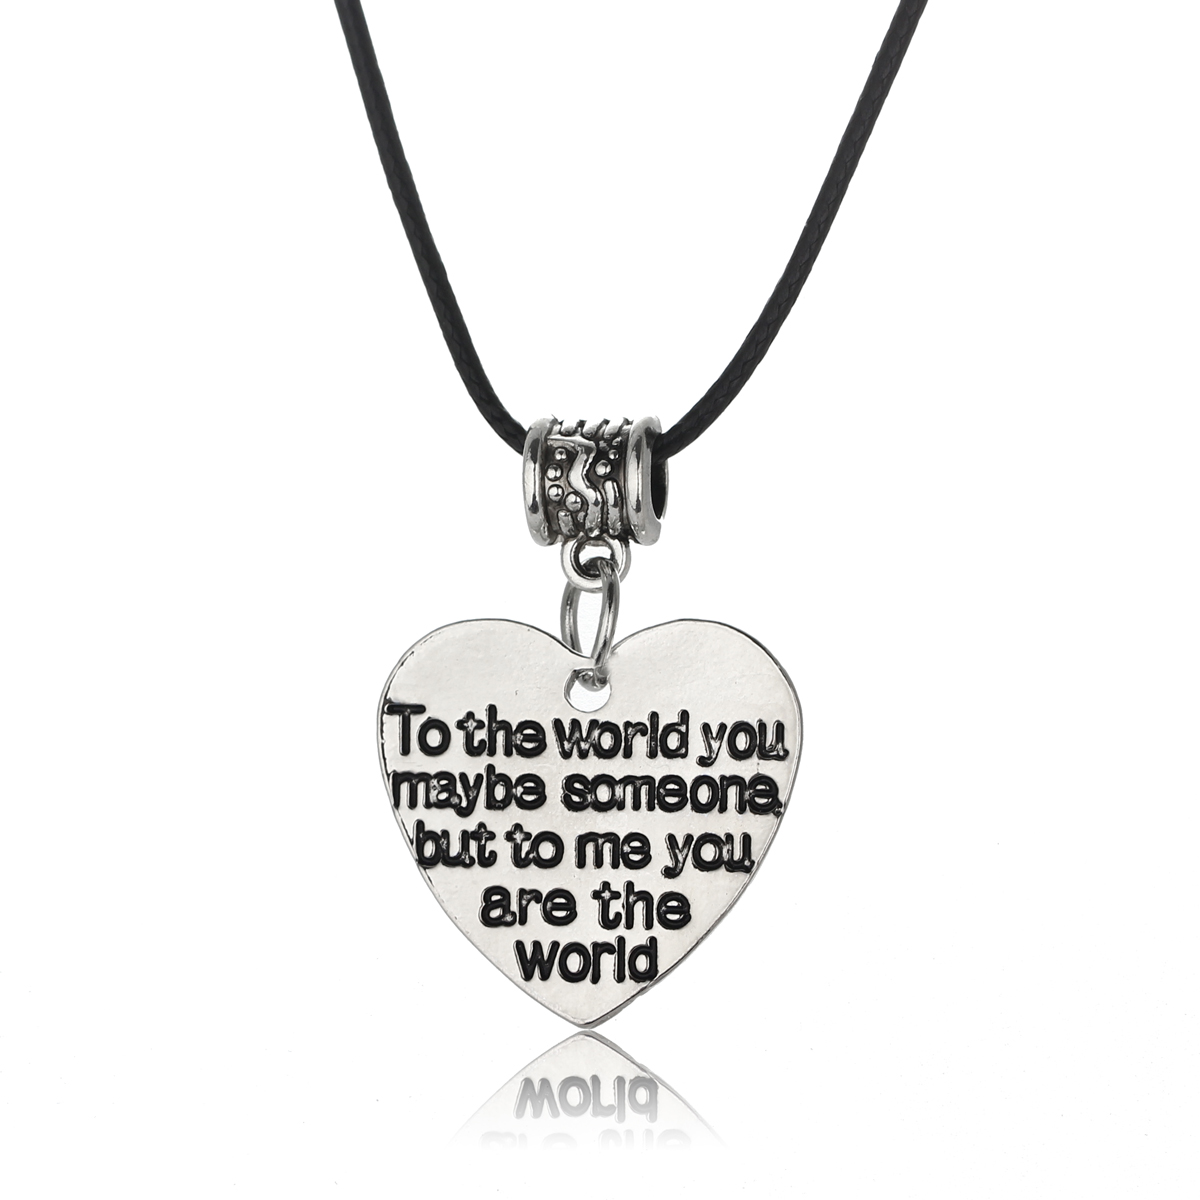 ashes memorial pendant steel personalised stainless necklace locket fishing lm